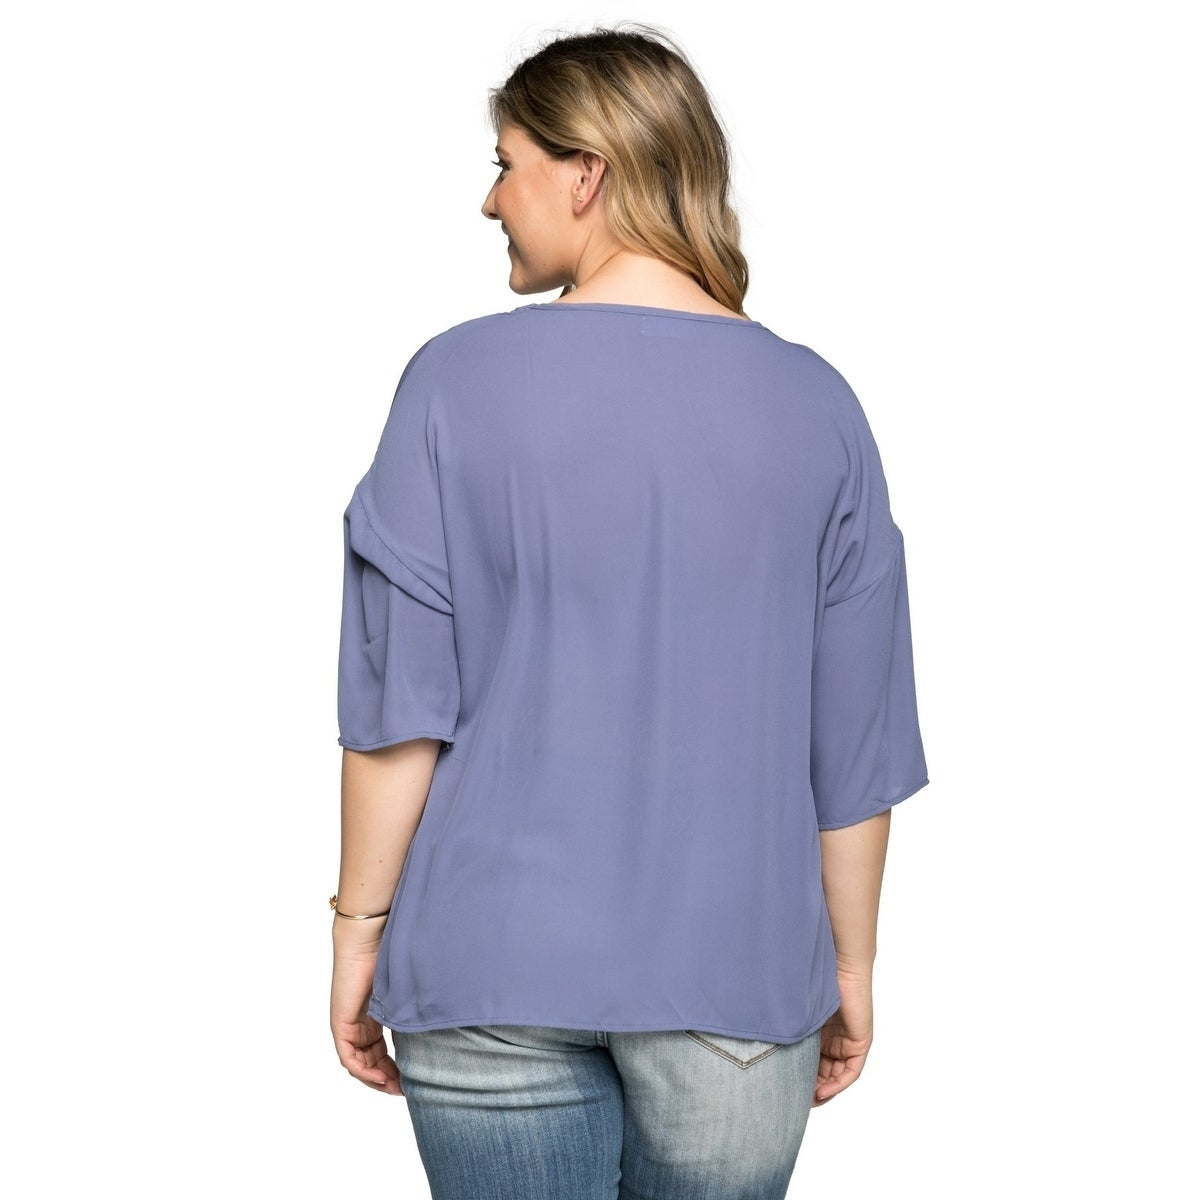 015f483c071 Shop Xehar Women s Plus Size Casual Fancy Blouse Tunic Top - Free Shipping  On Orders Over  45 - Overstock - 20529712